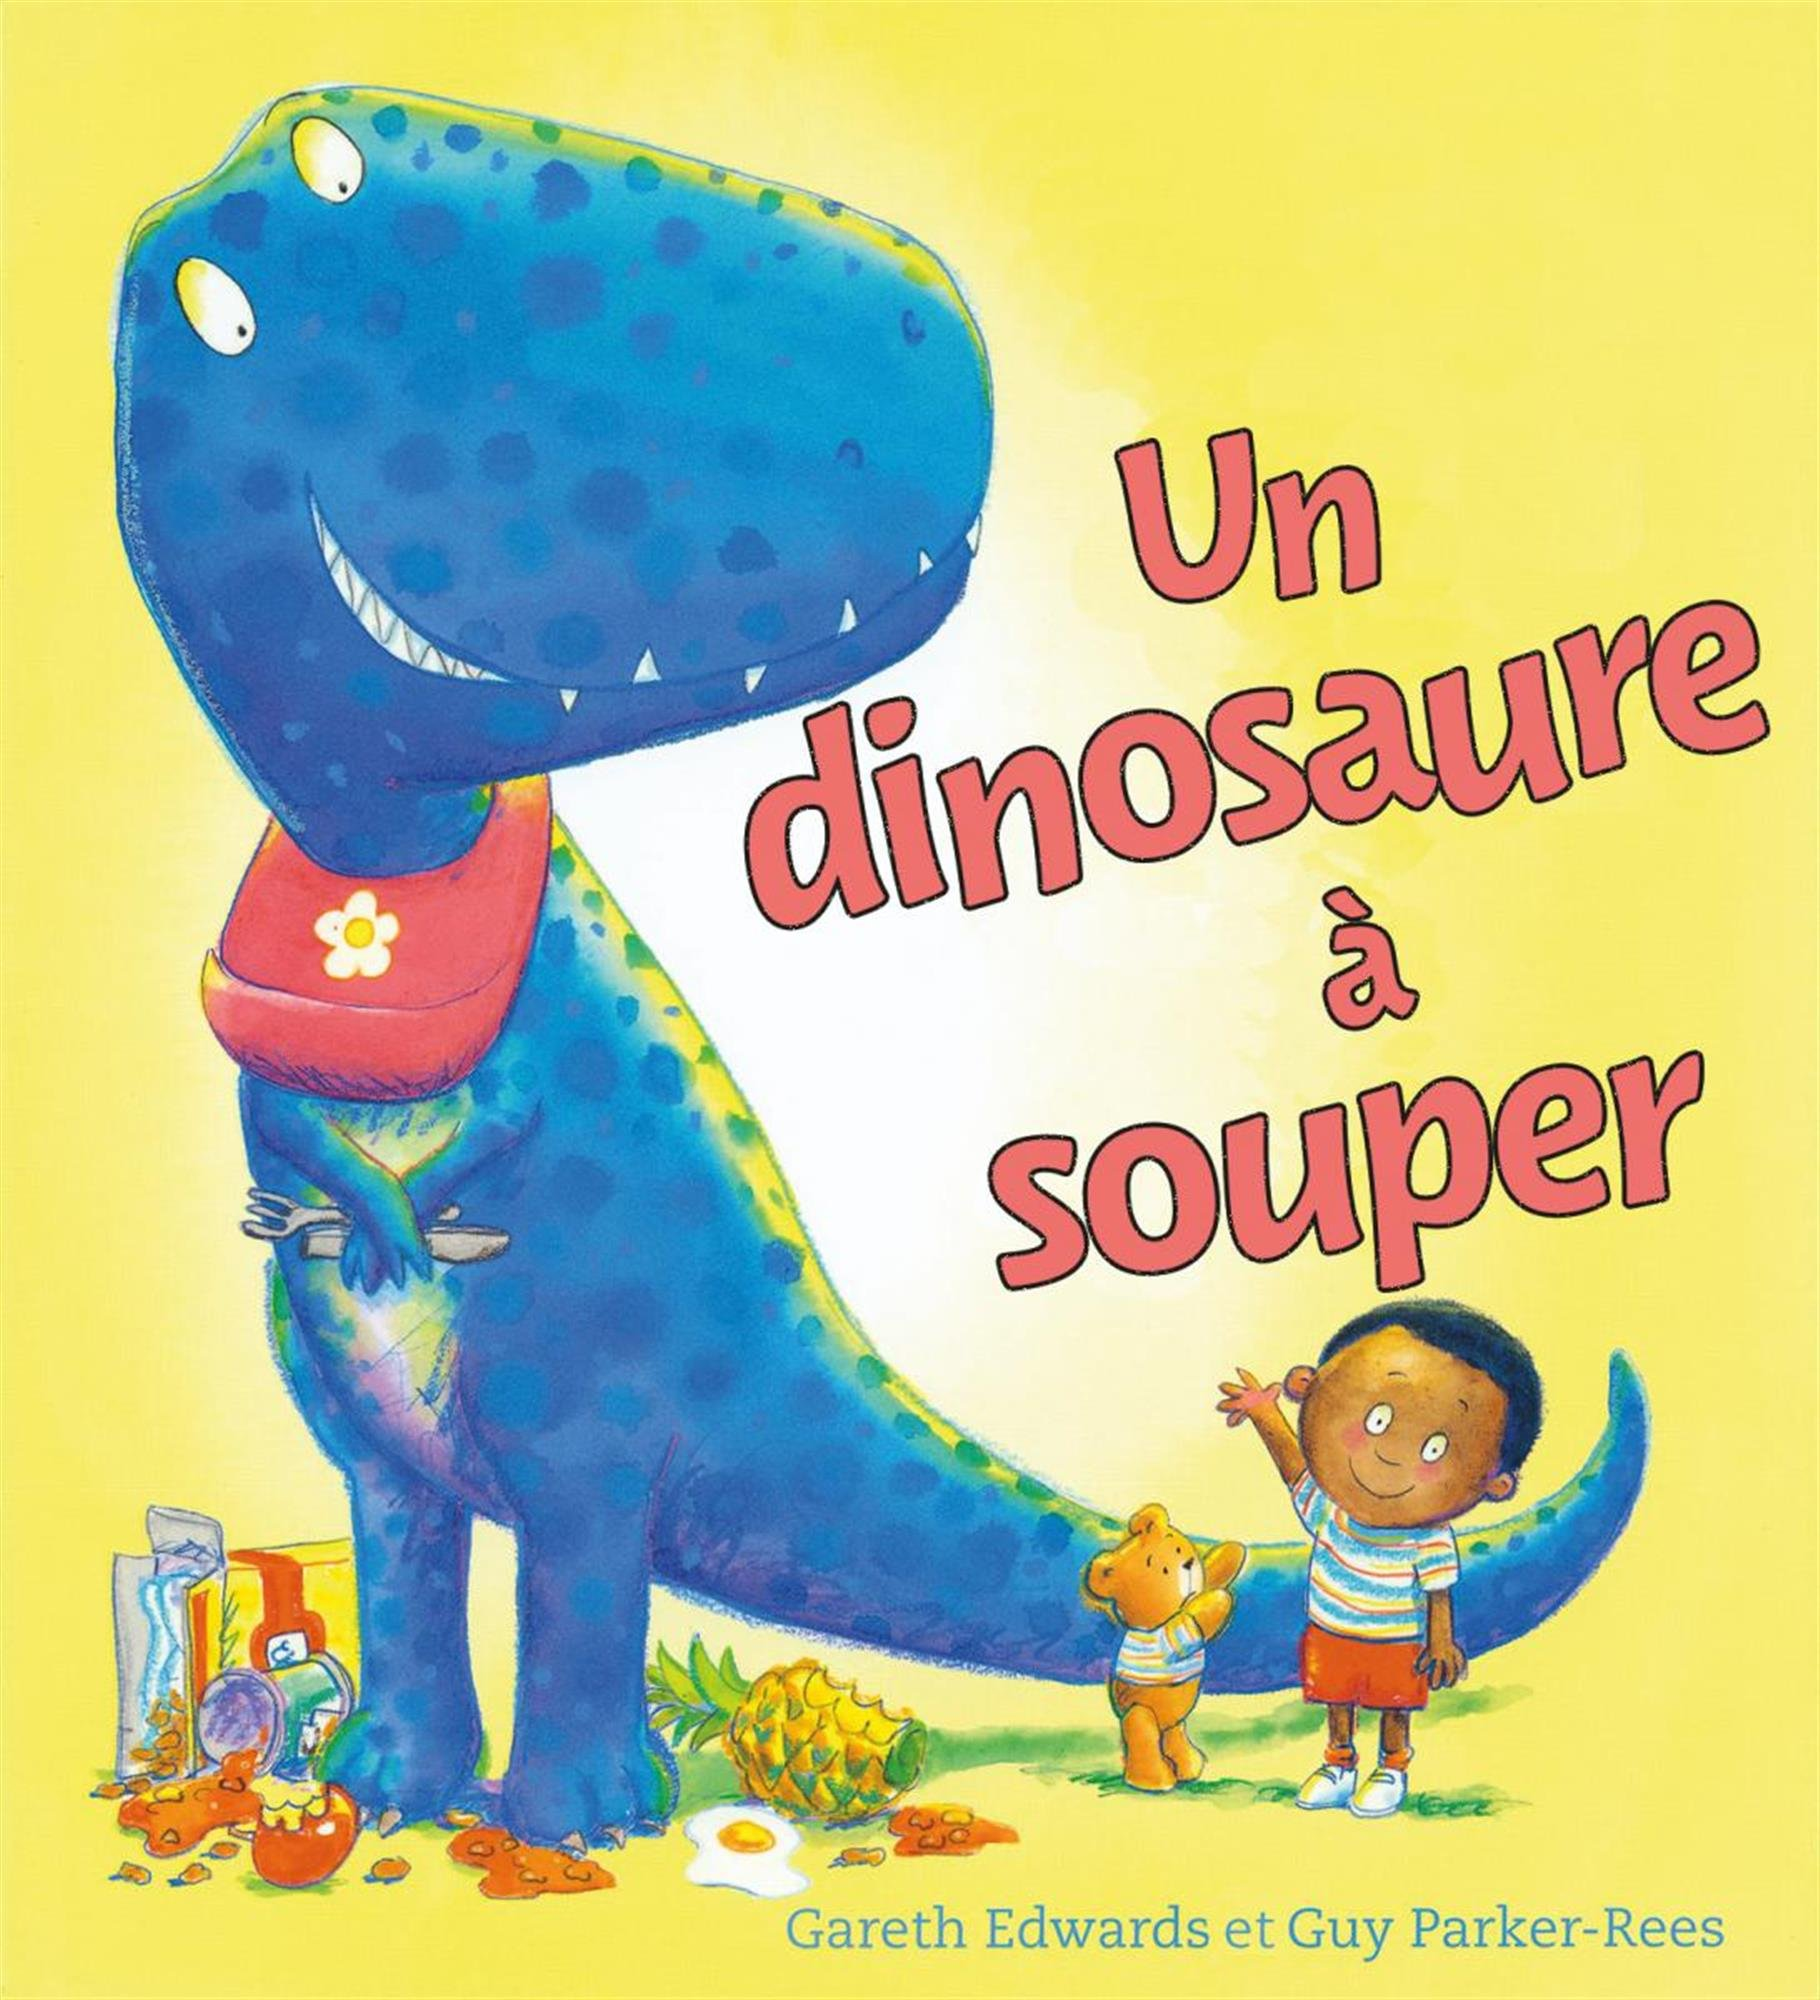 Un Dinosaure a Souper (French Edition): Gareth Edwards, Guy Parker-Rees: 9781443153492: Amazon.com: Books